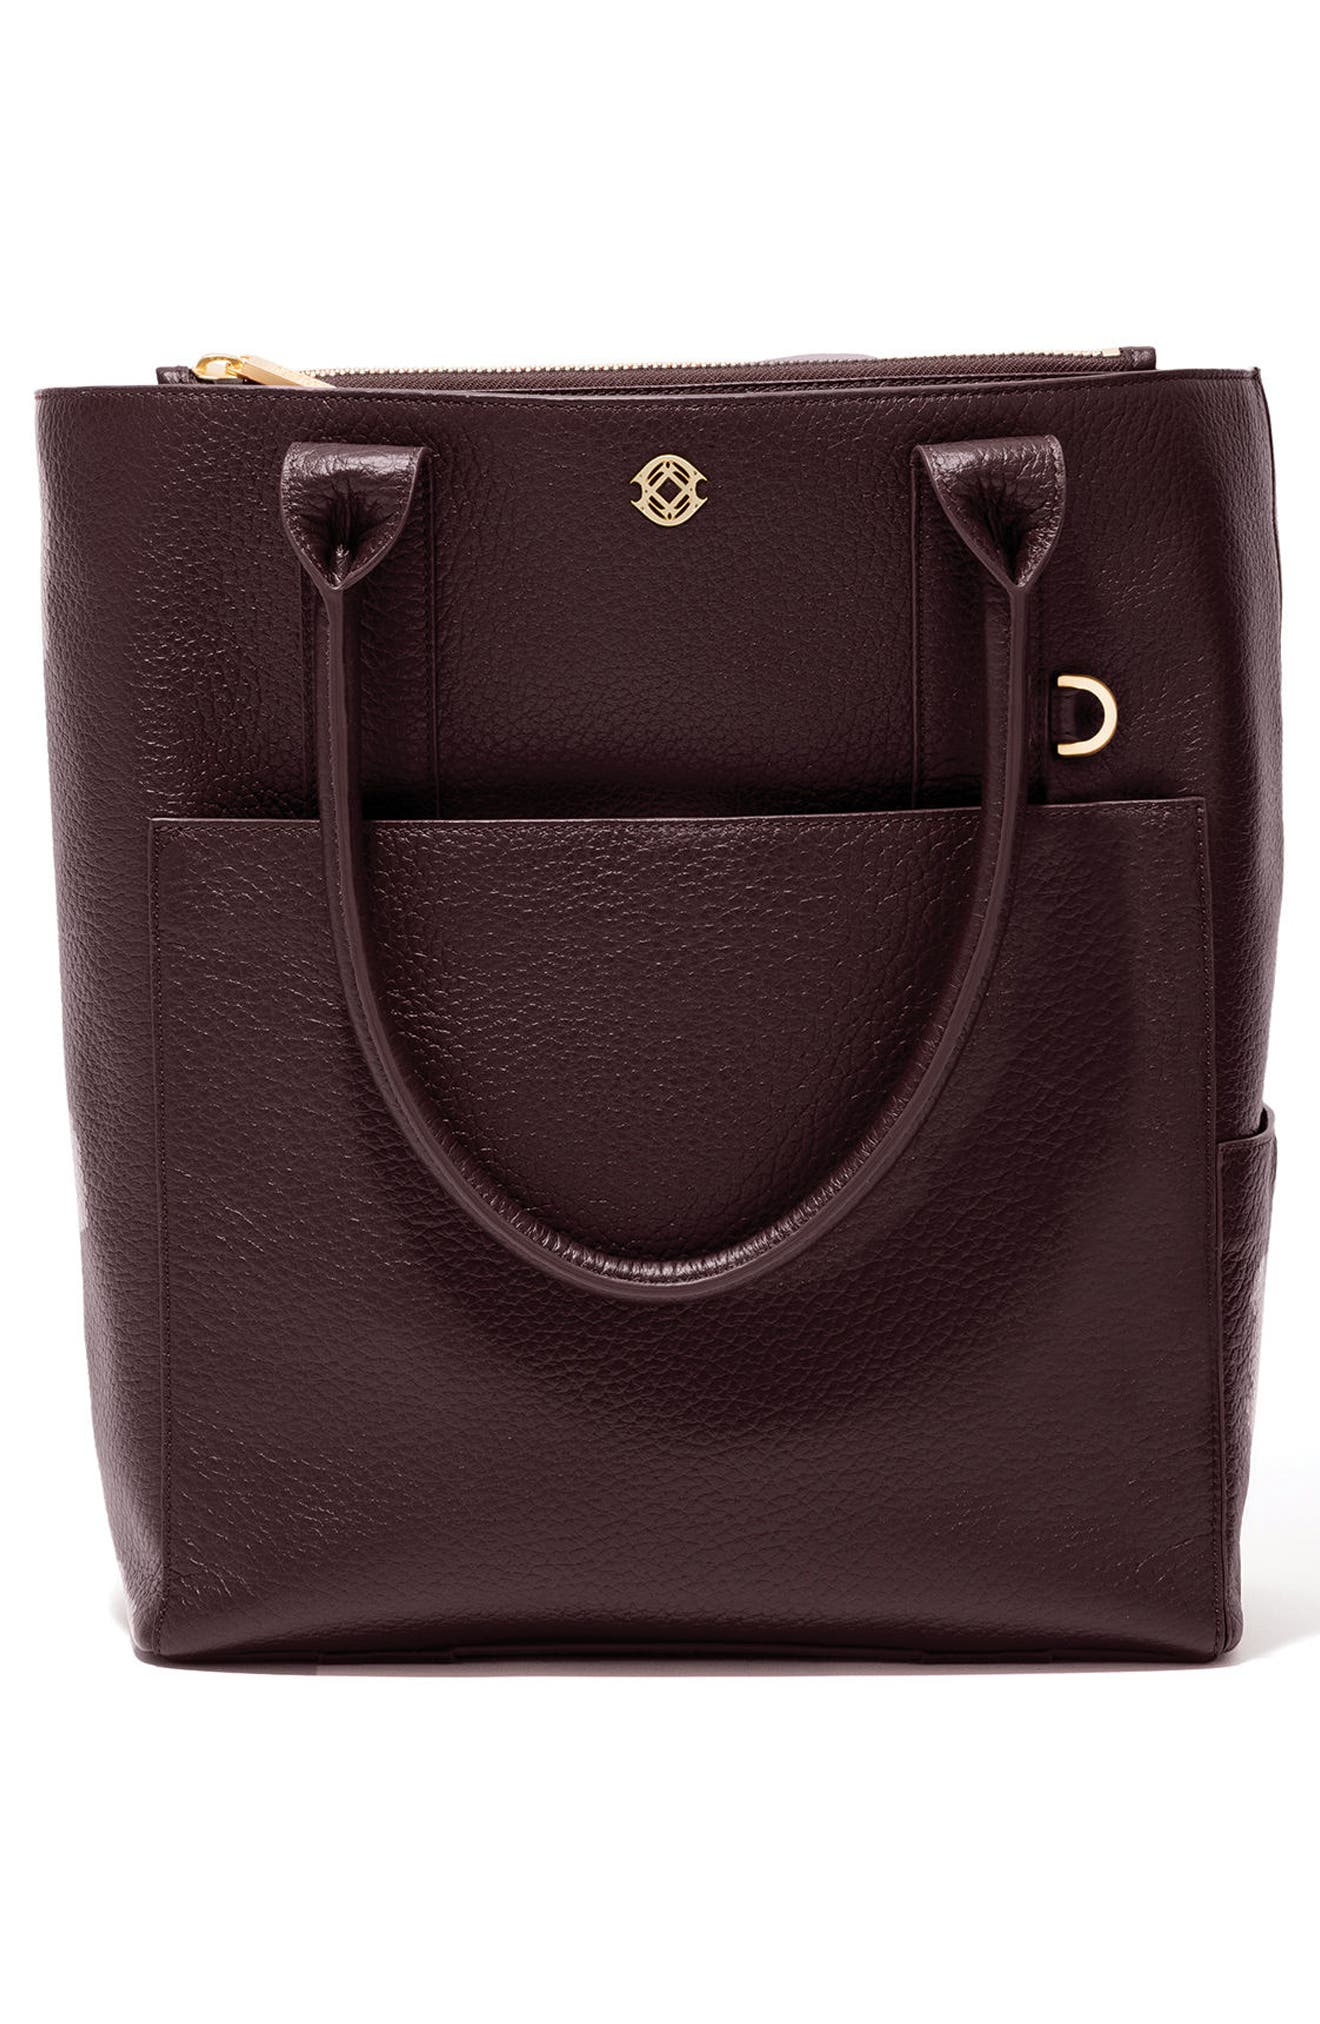 Charlie Leather Tote,                             Alternate thumbnail 3, color,                             Oxblood